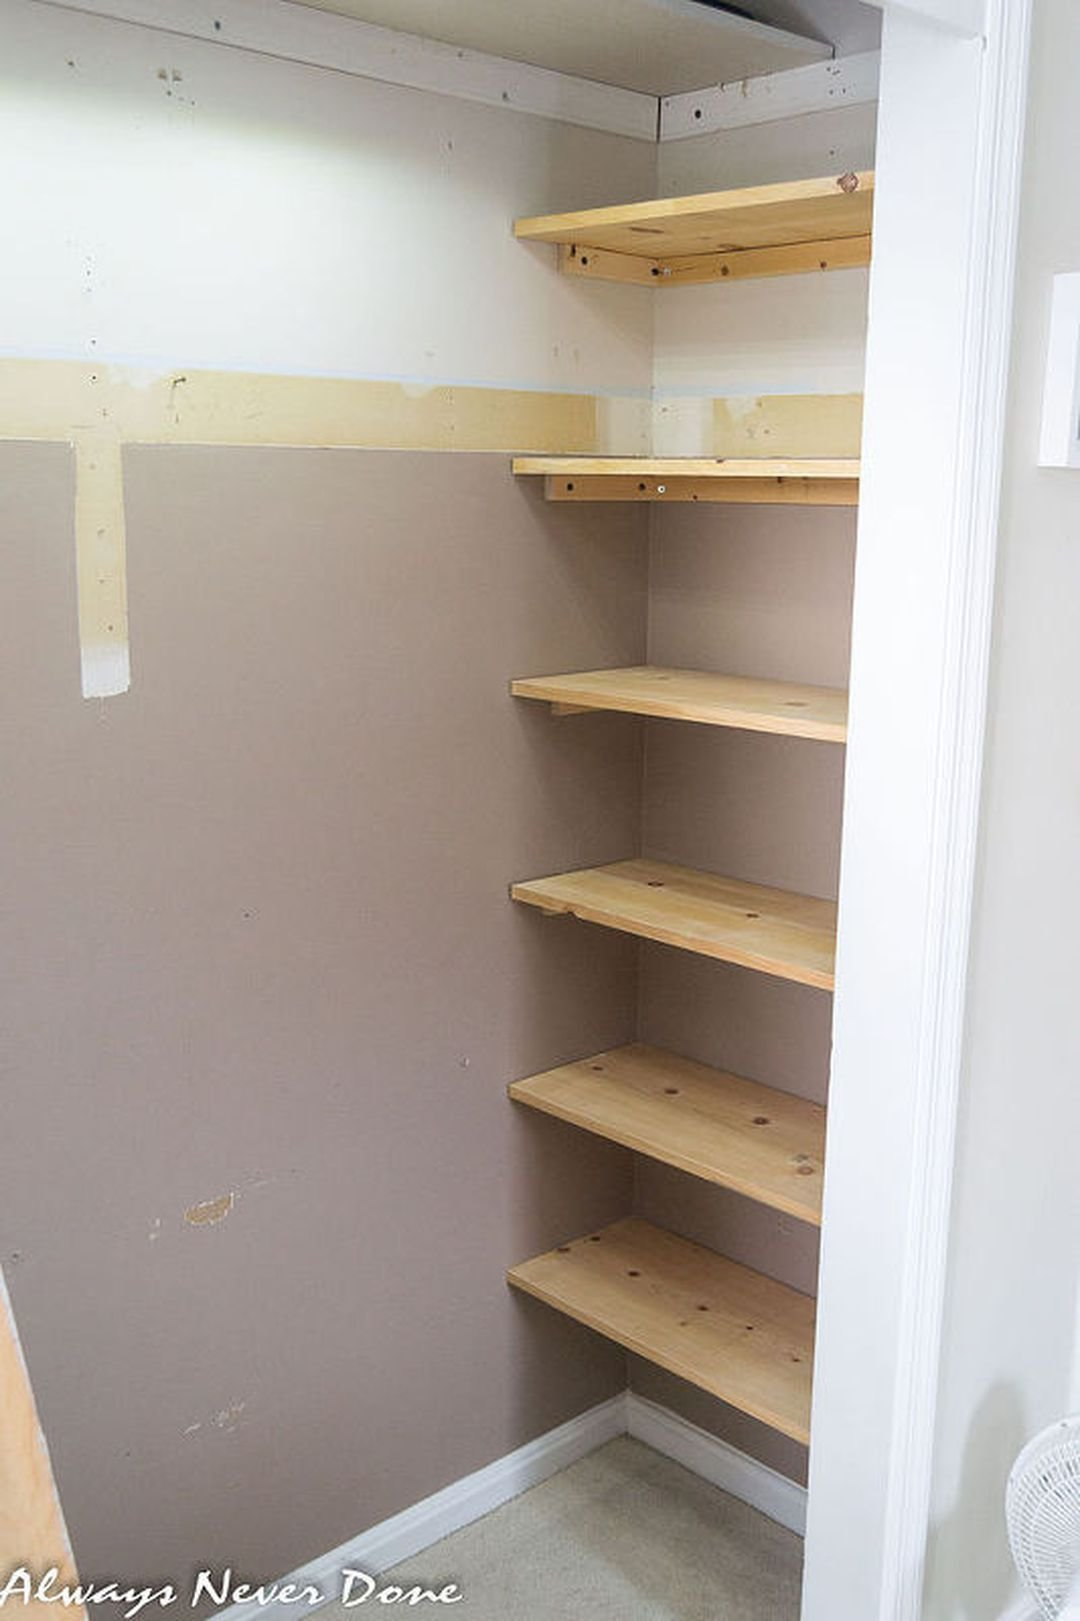 Best Easy Diy Bedroom Storage For Small Space 29 Onechitecture With Pictures